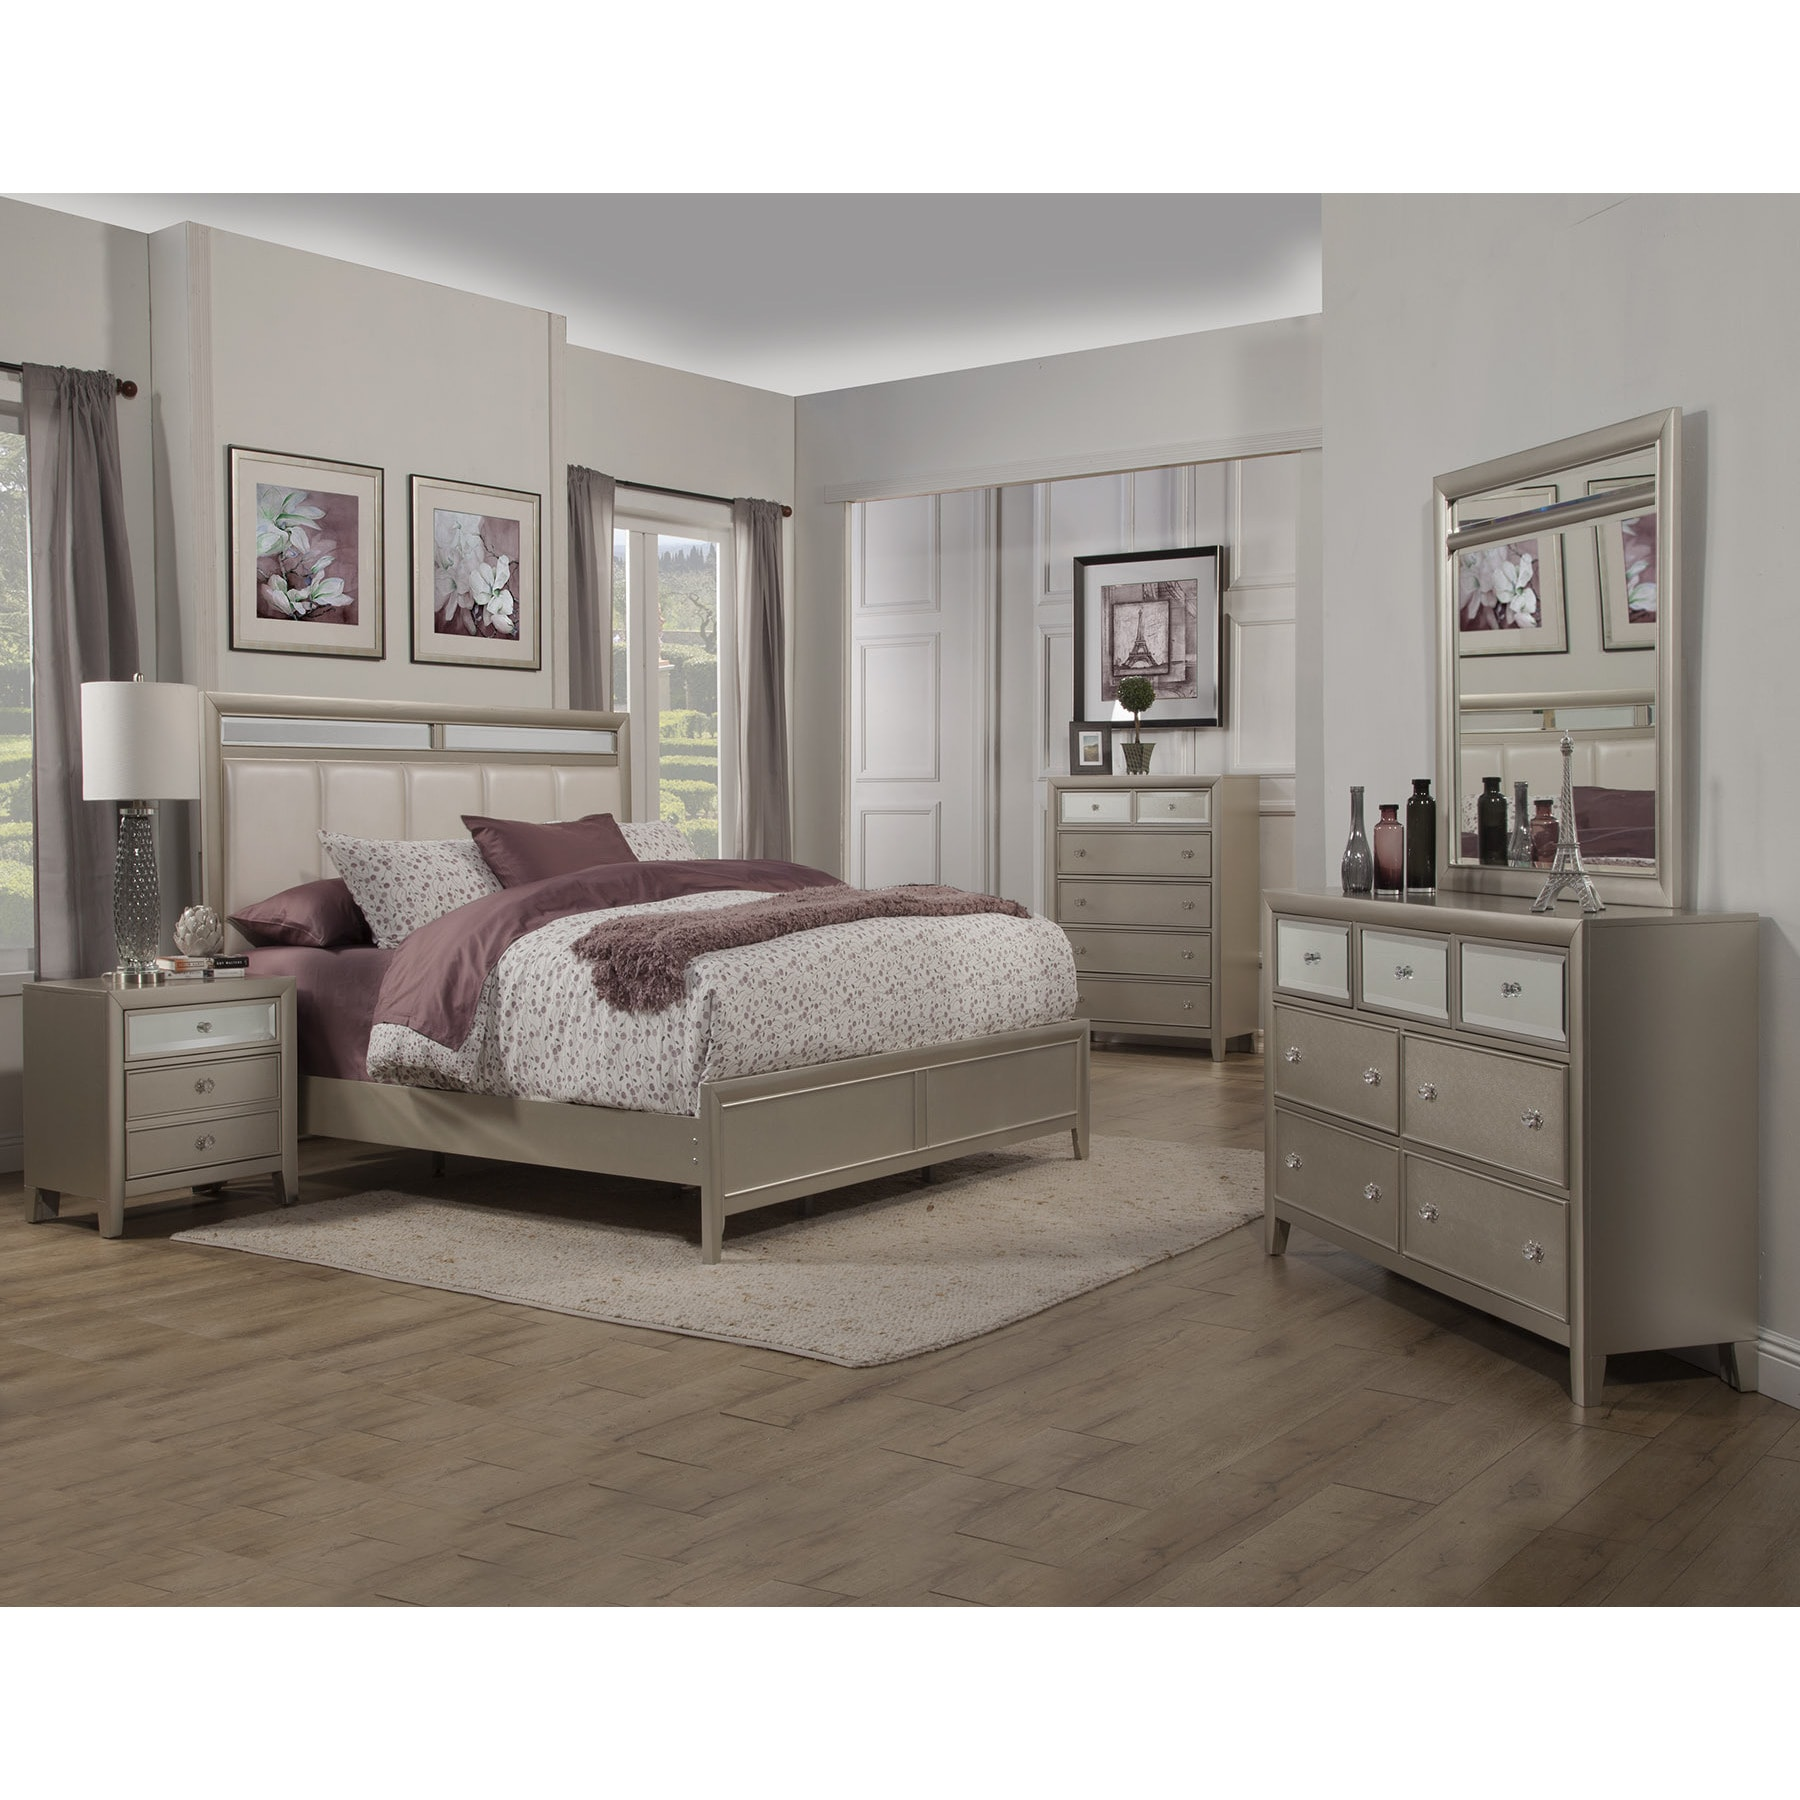 Alpine Furniture Alpine Silver Dreams Panel Bed with Upho...